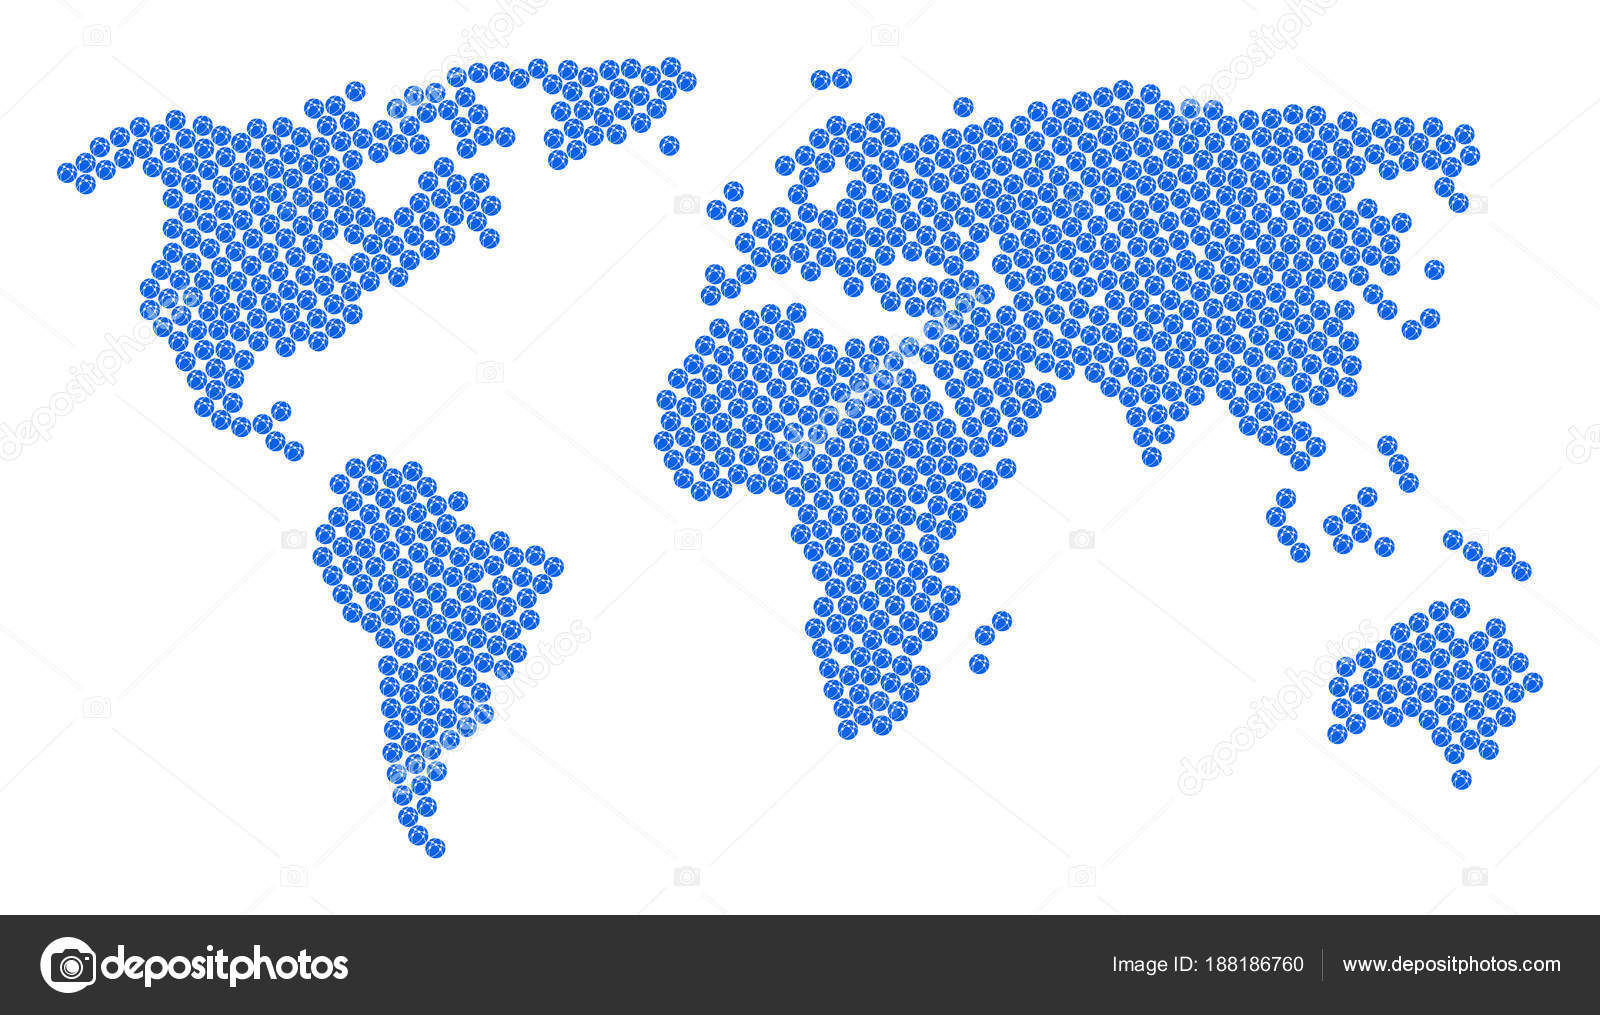 Worldwide map collage of web browser icons stock vector ahasoft worldwide map collage of web browser icons stock vector gumiabroncs Images